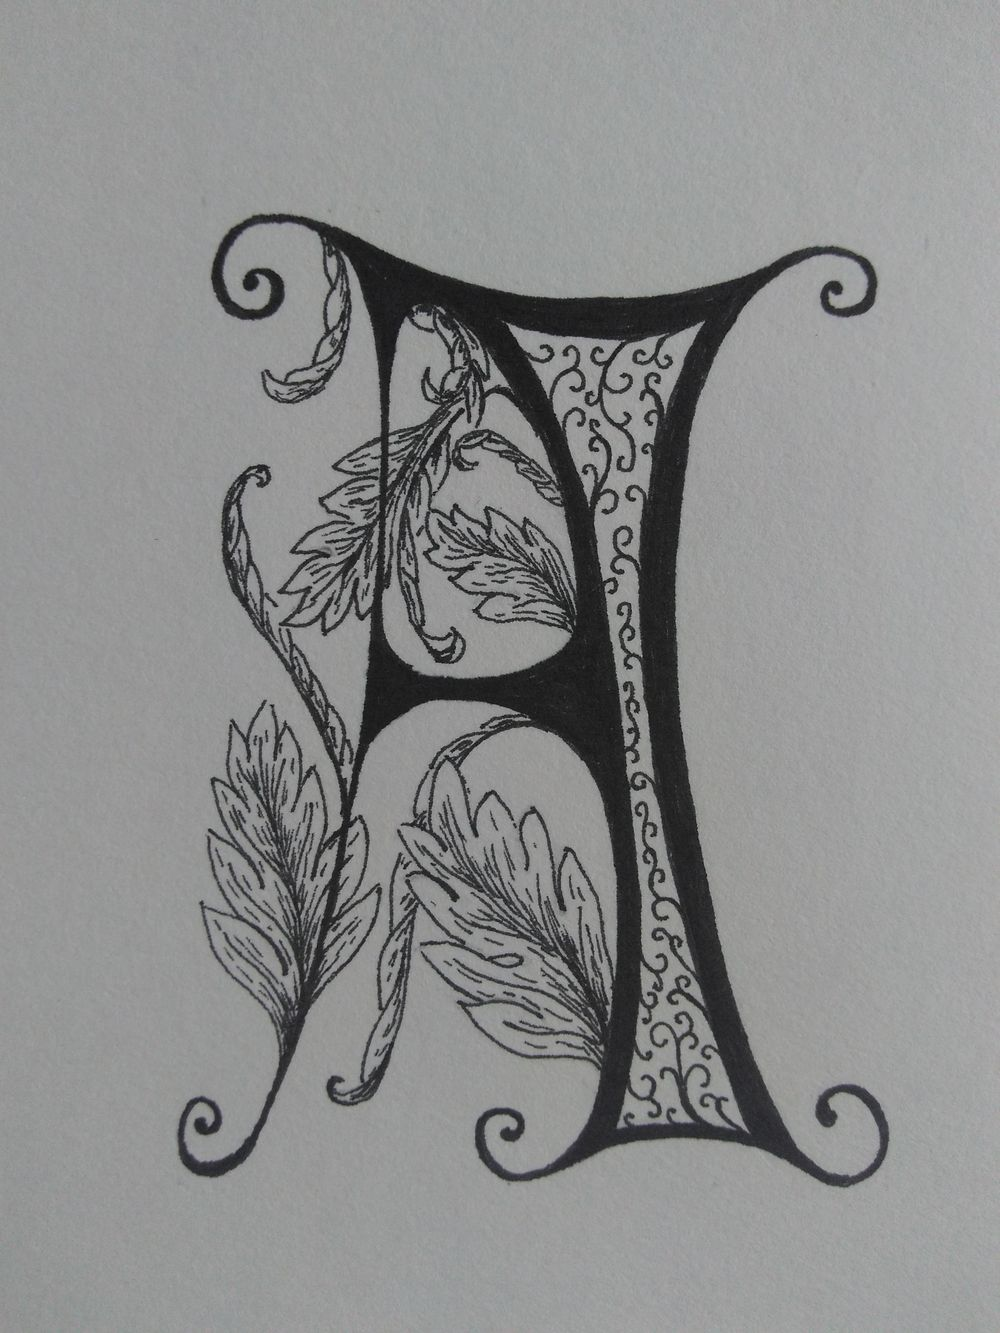 Ornamented Capitals with acanthus - image 3 - student project